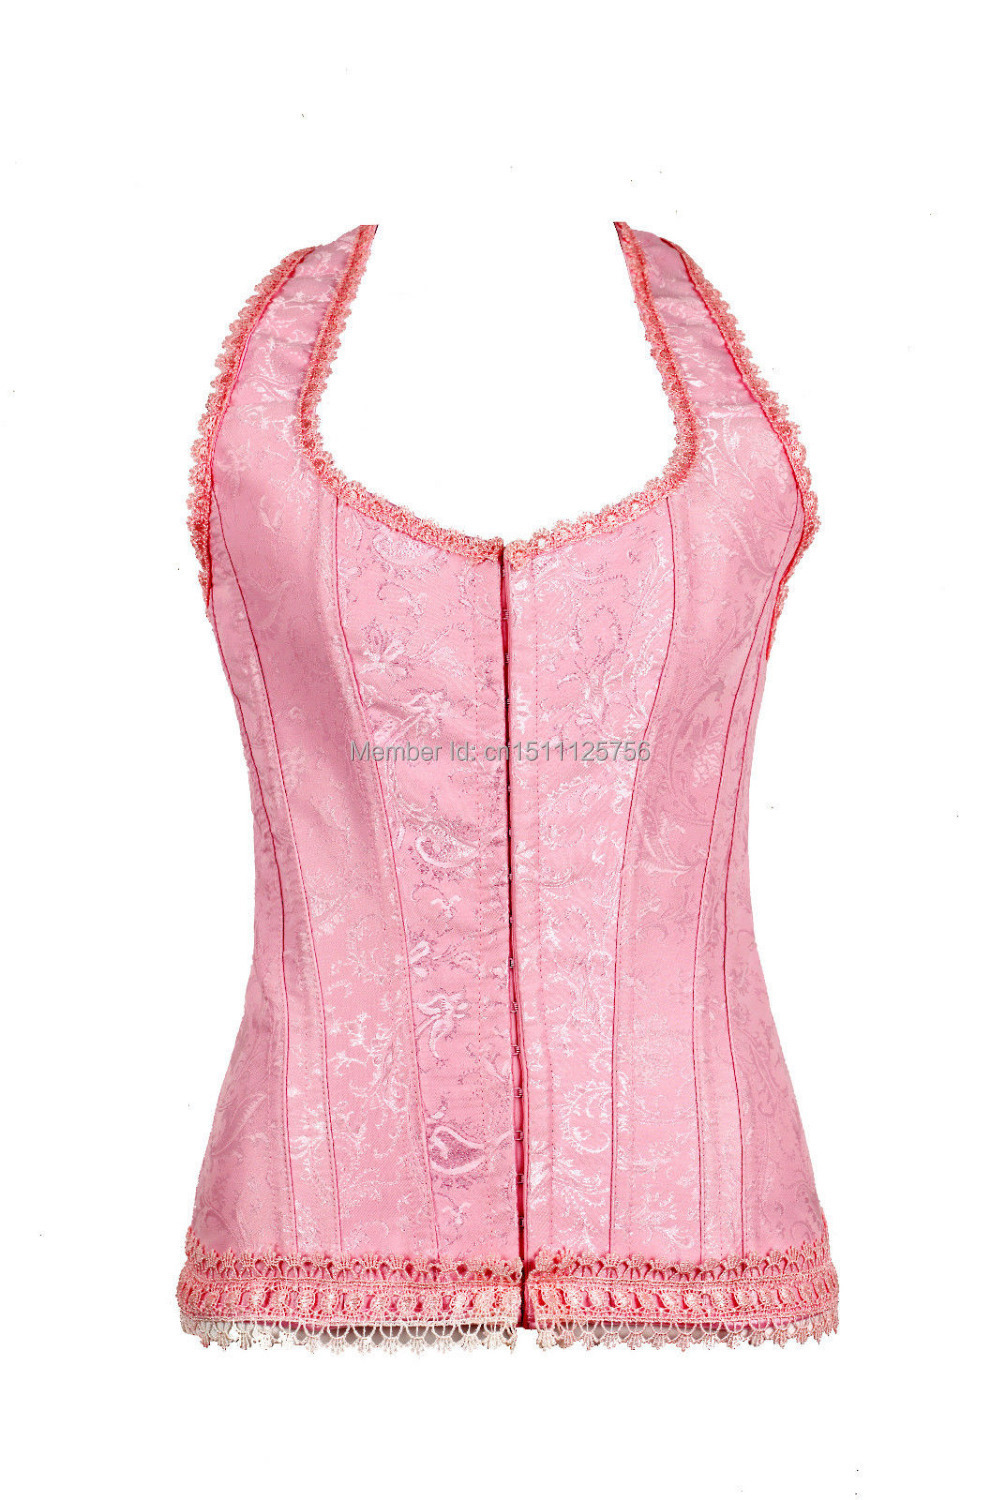 Sexy Pink Wedding Renaissance Satin Corset Lace Up Bustier Top Body Shaper 3050